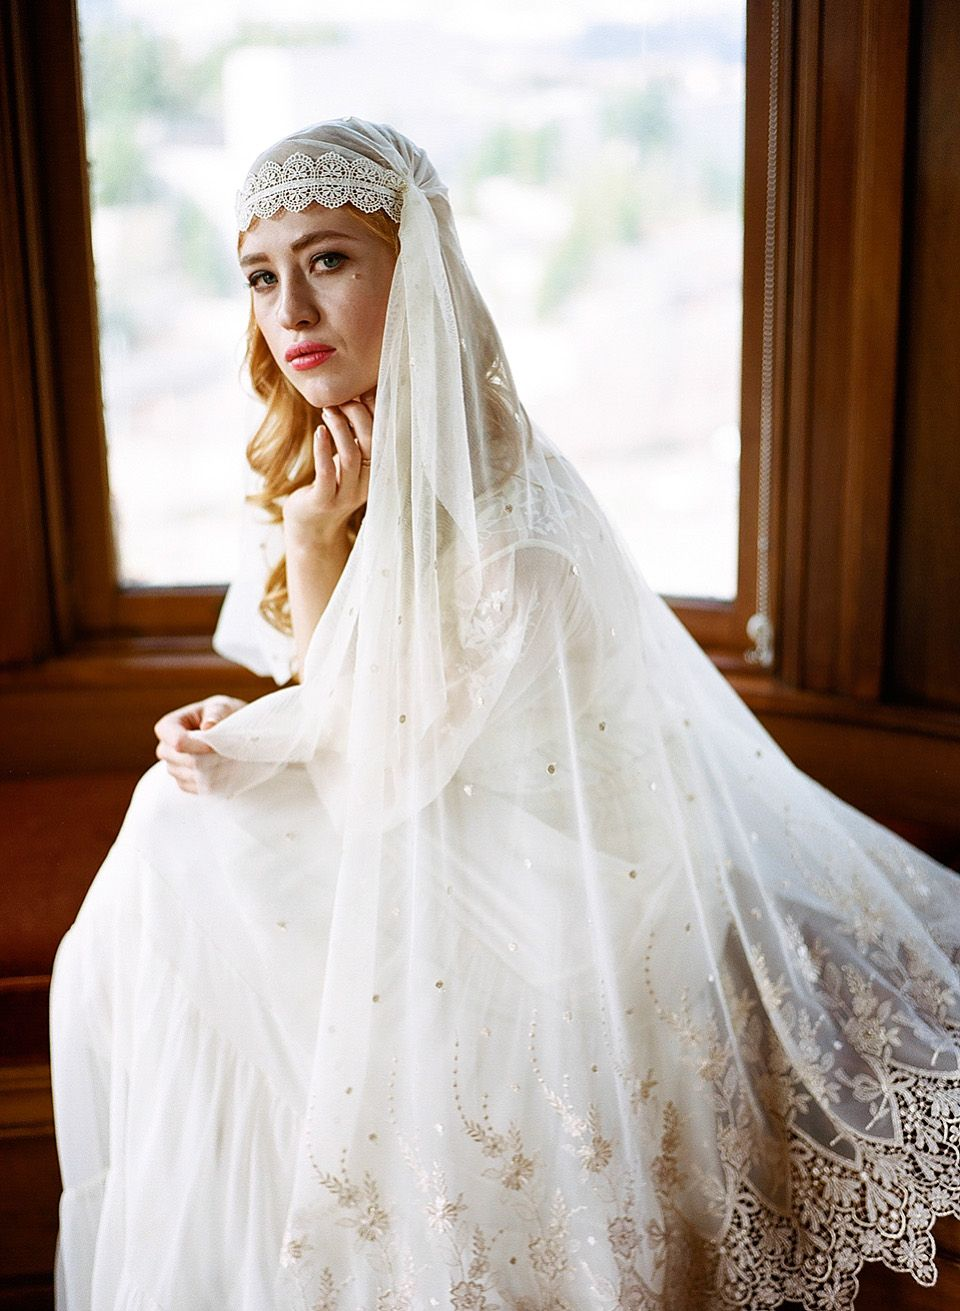 Wedding Veil - How to Select the Perfect One | Unique ... |Beautiful Wedding Gowns With Veils